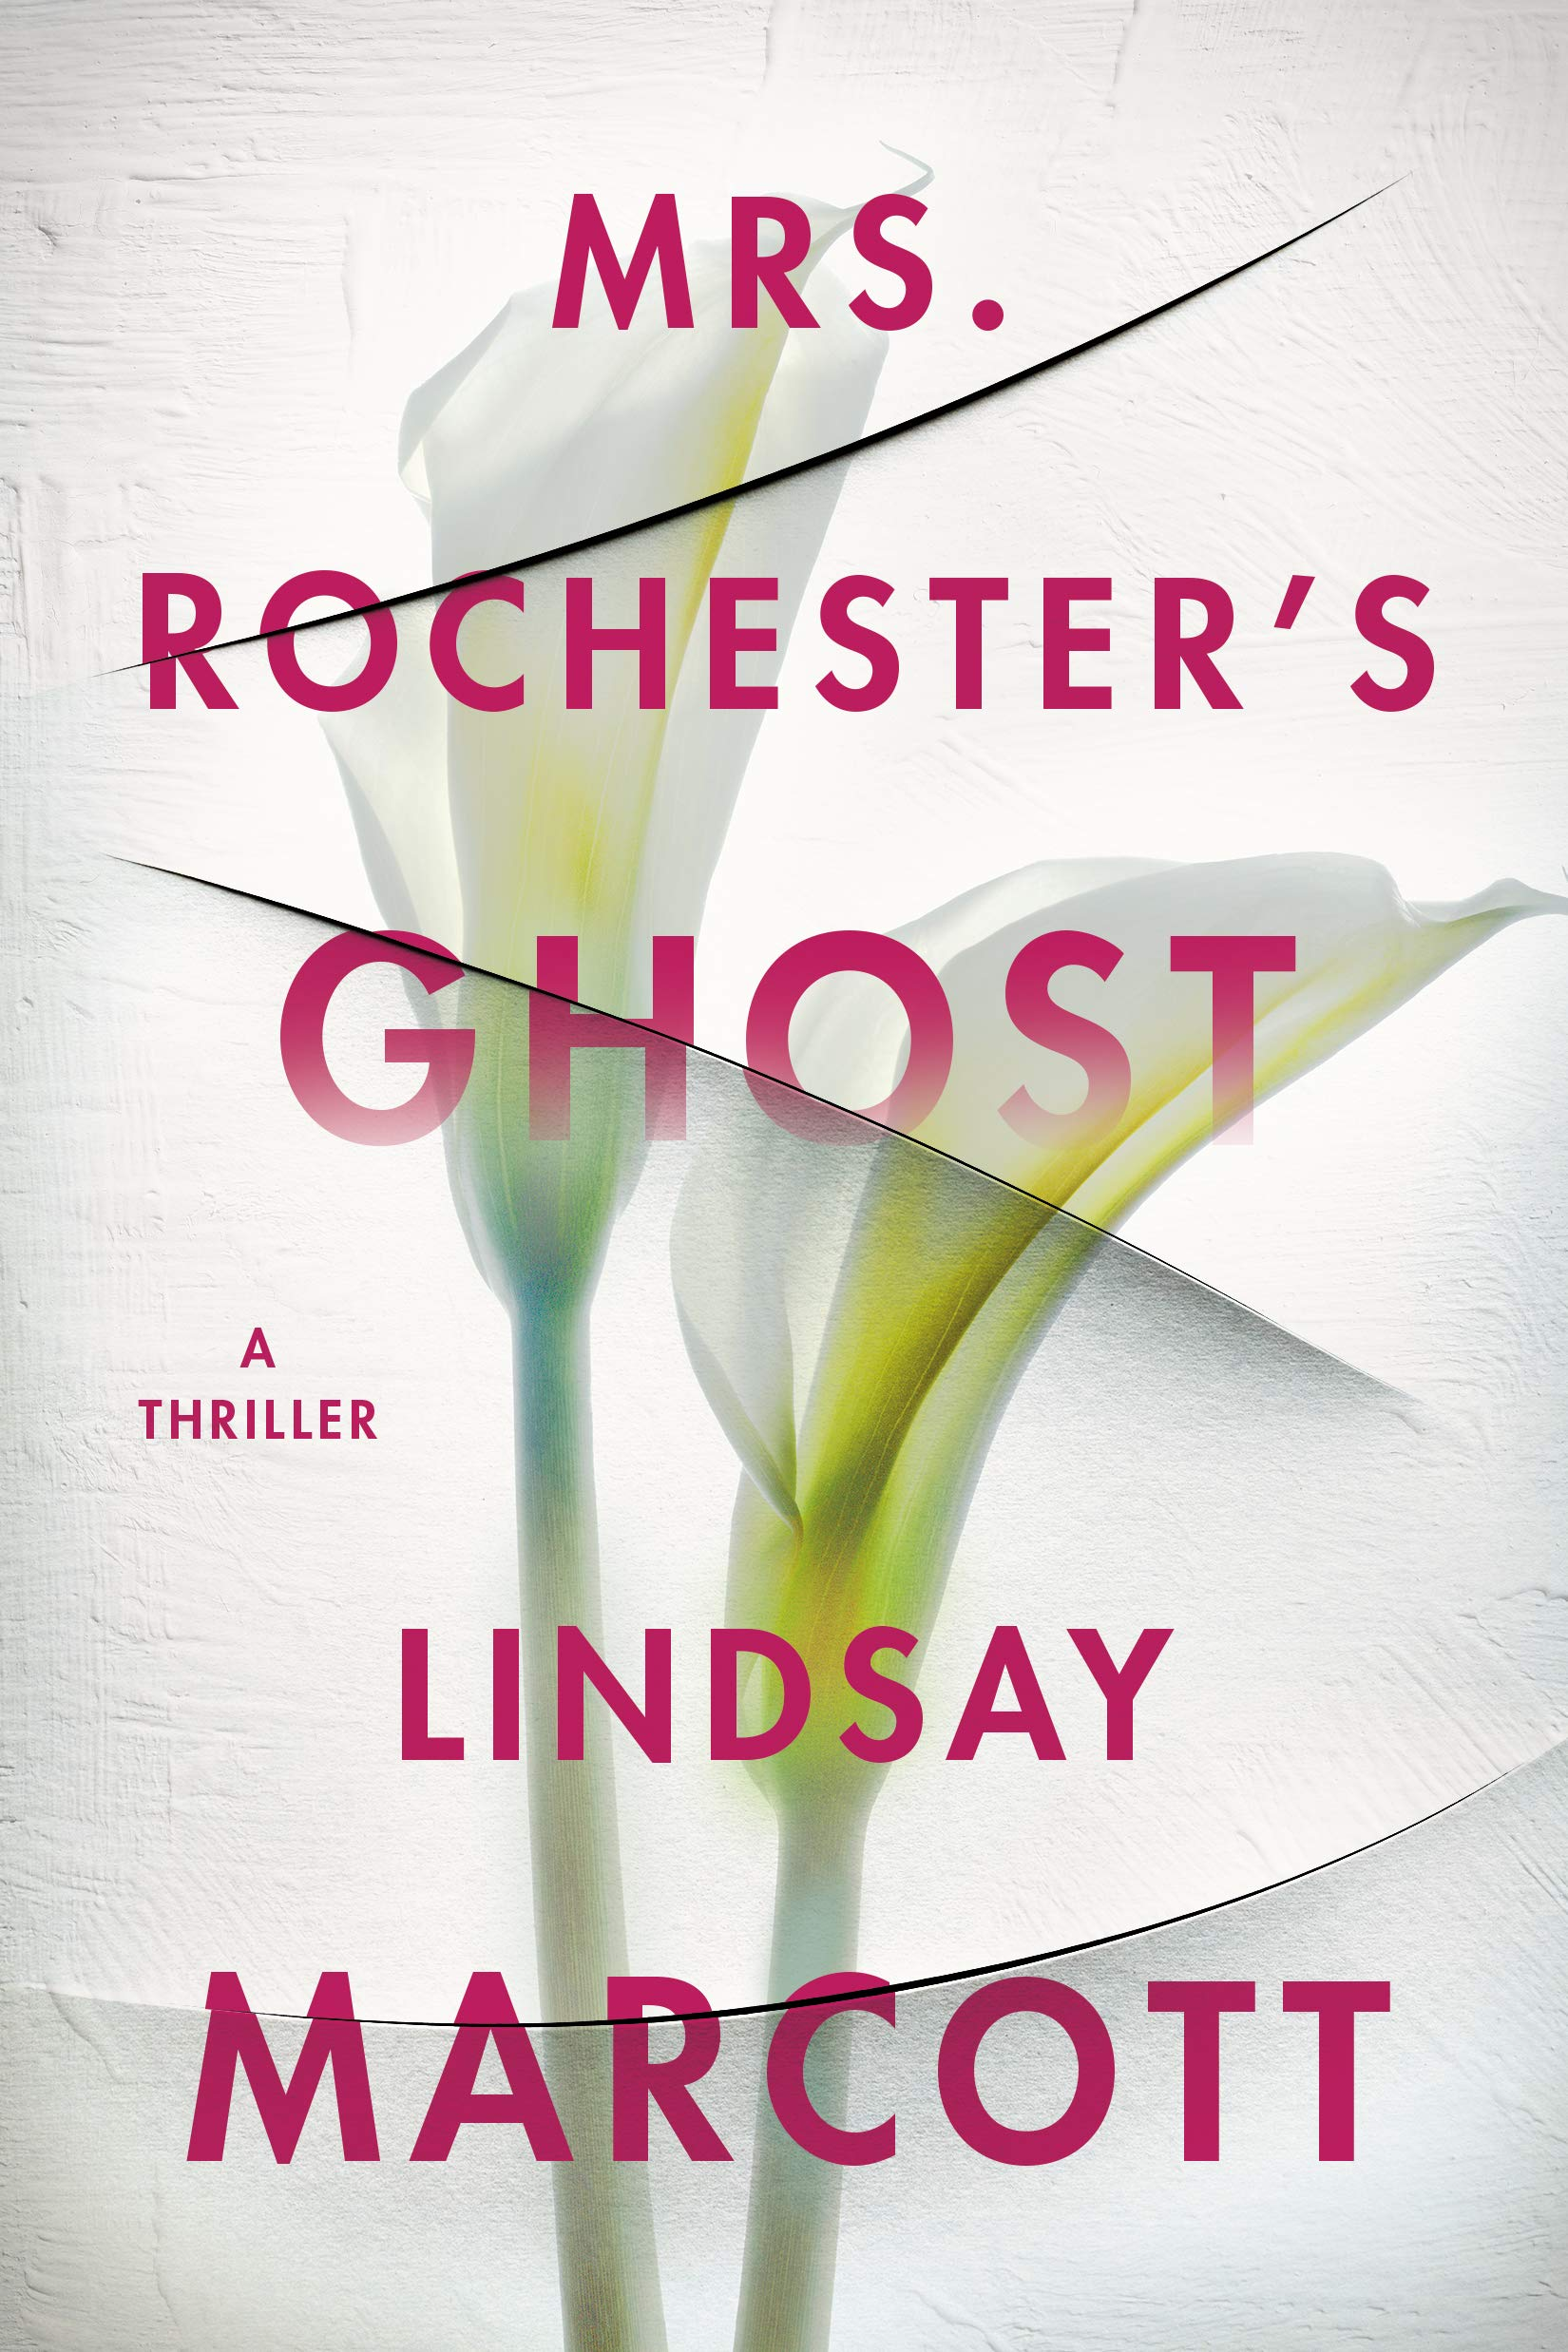 Mrs. Rochester's Ghost